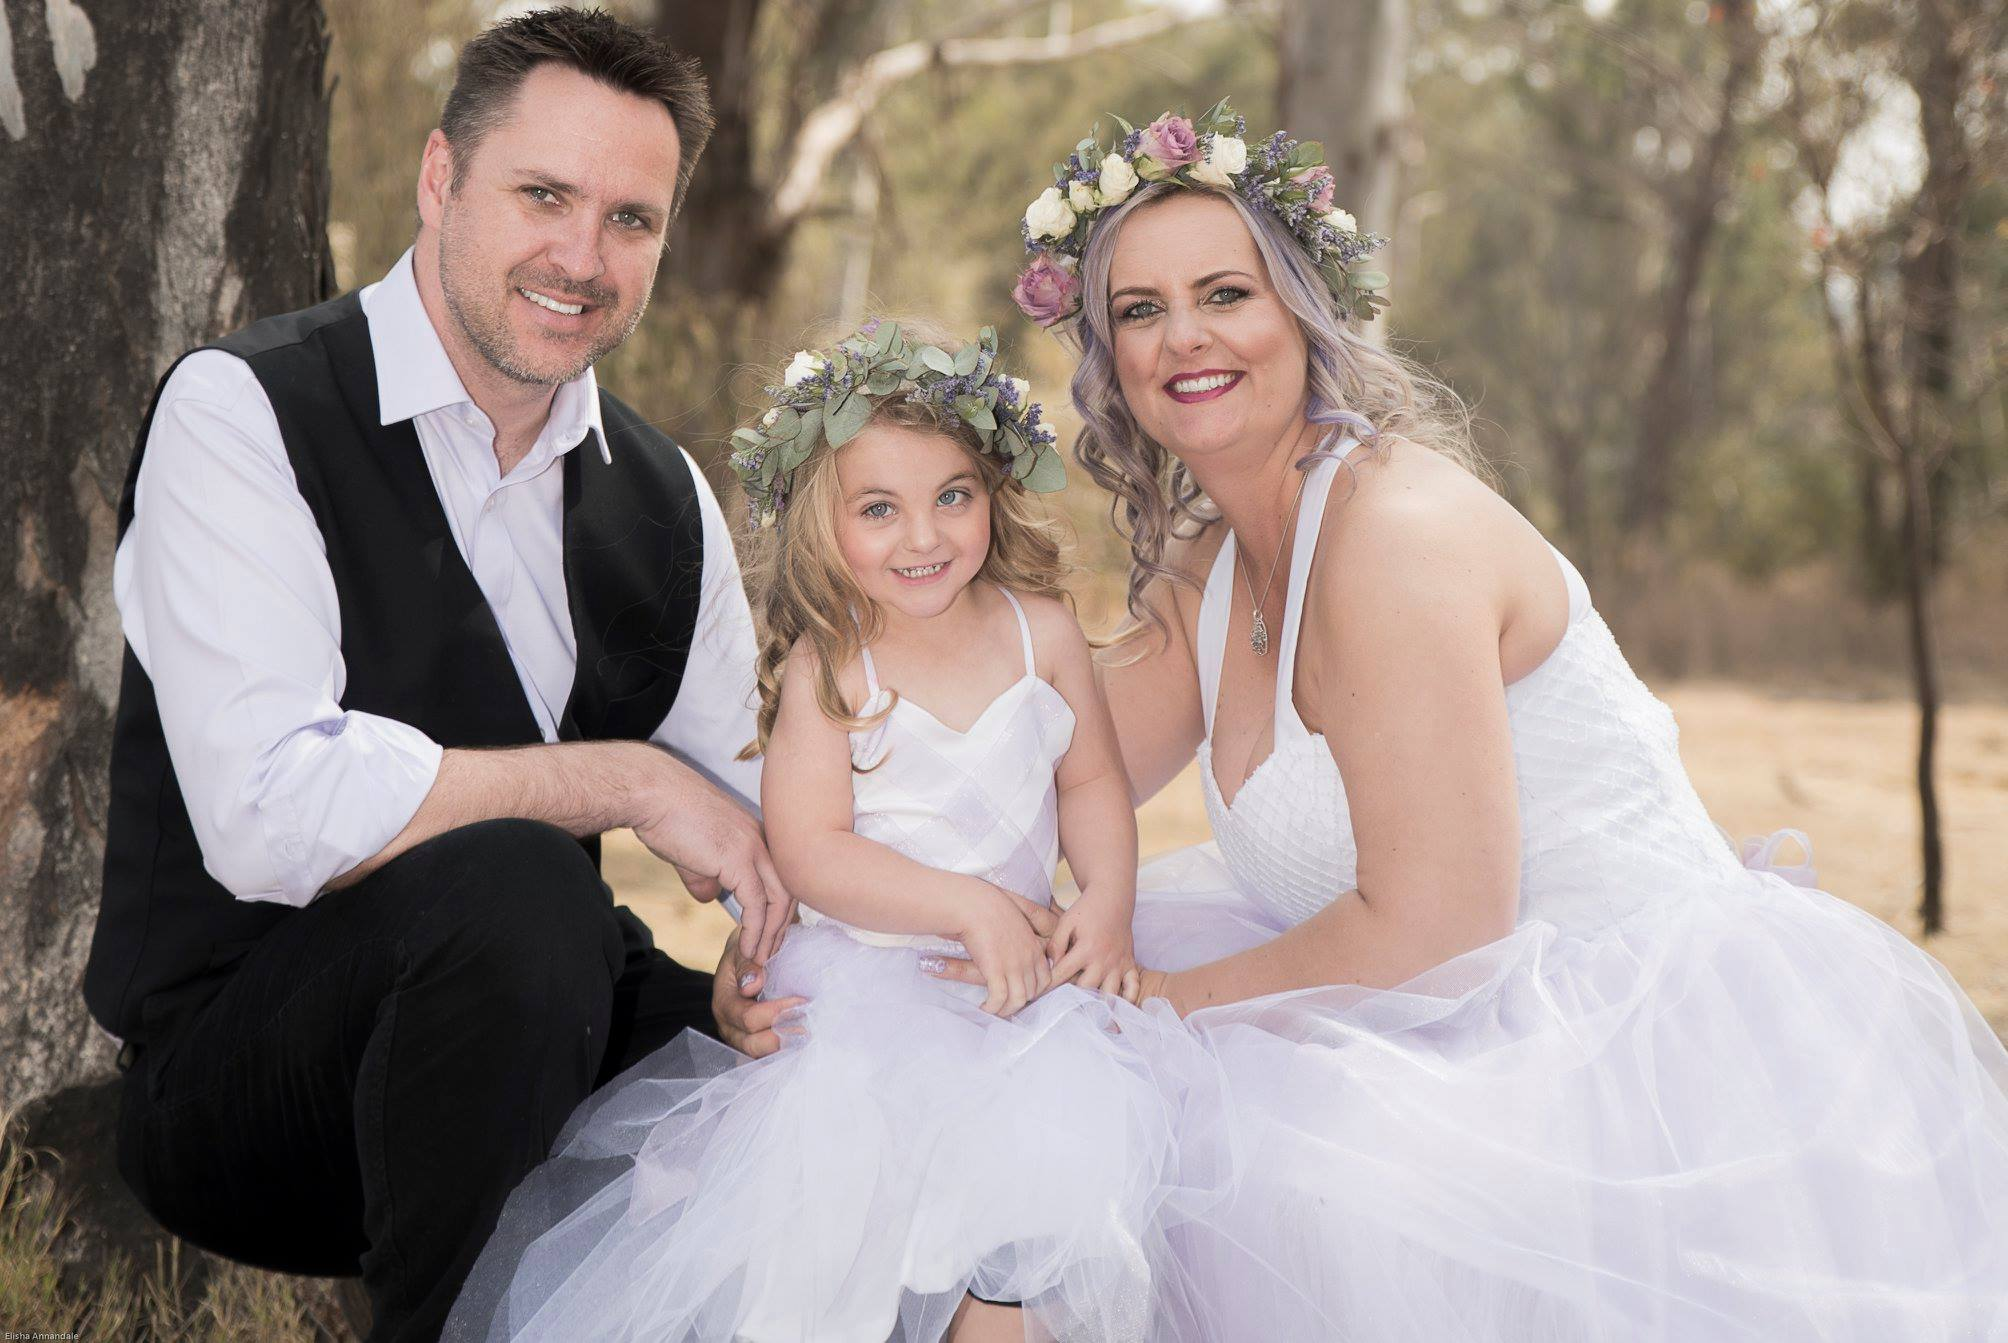 Deon and Nolene intimate family wedding